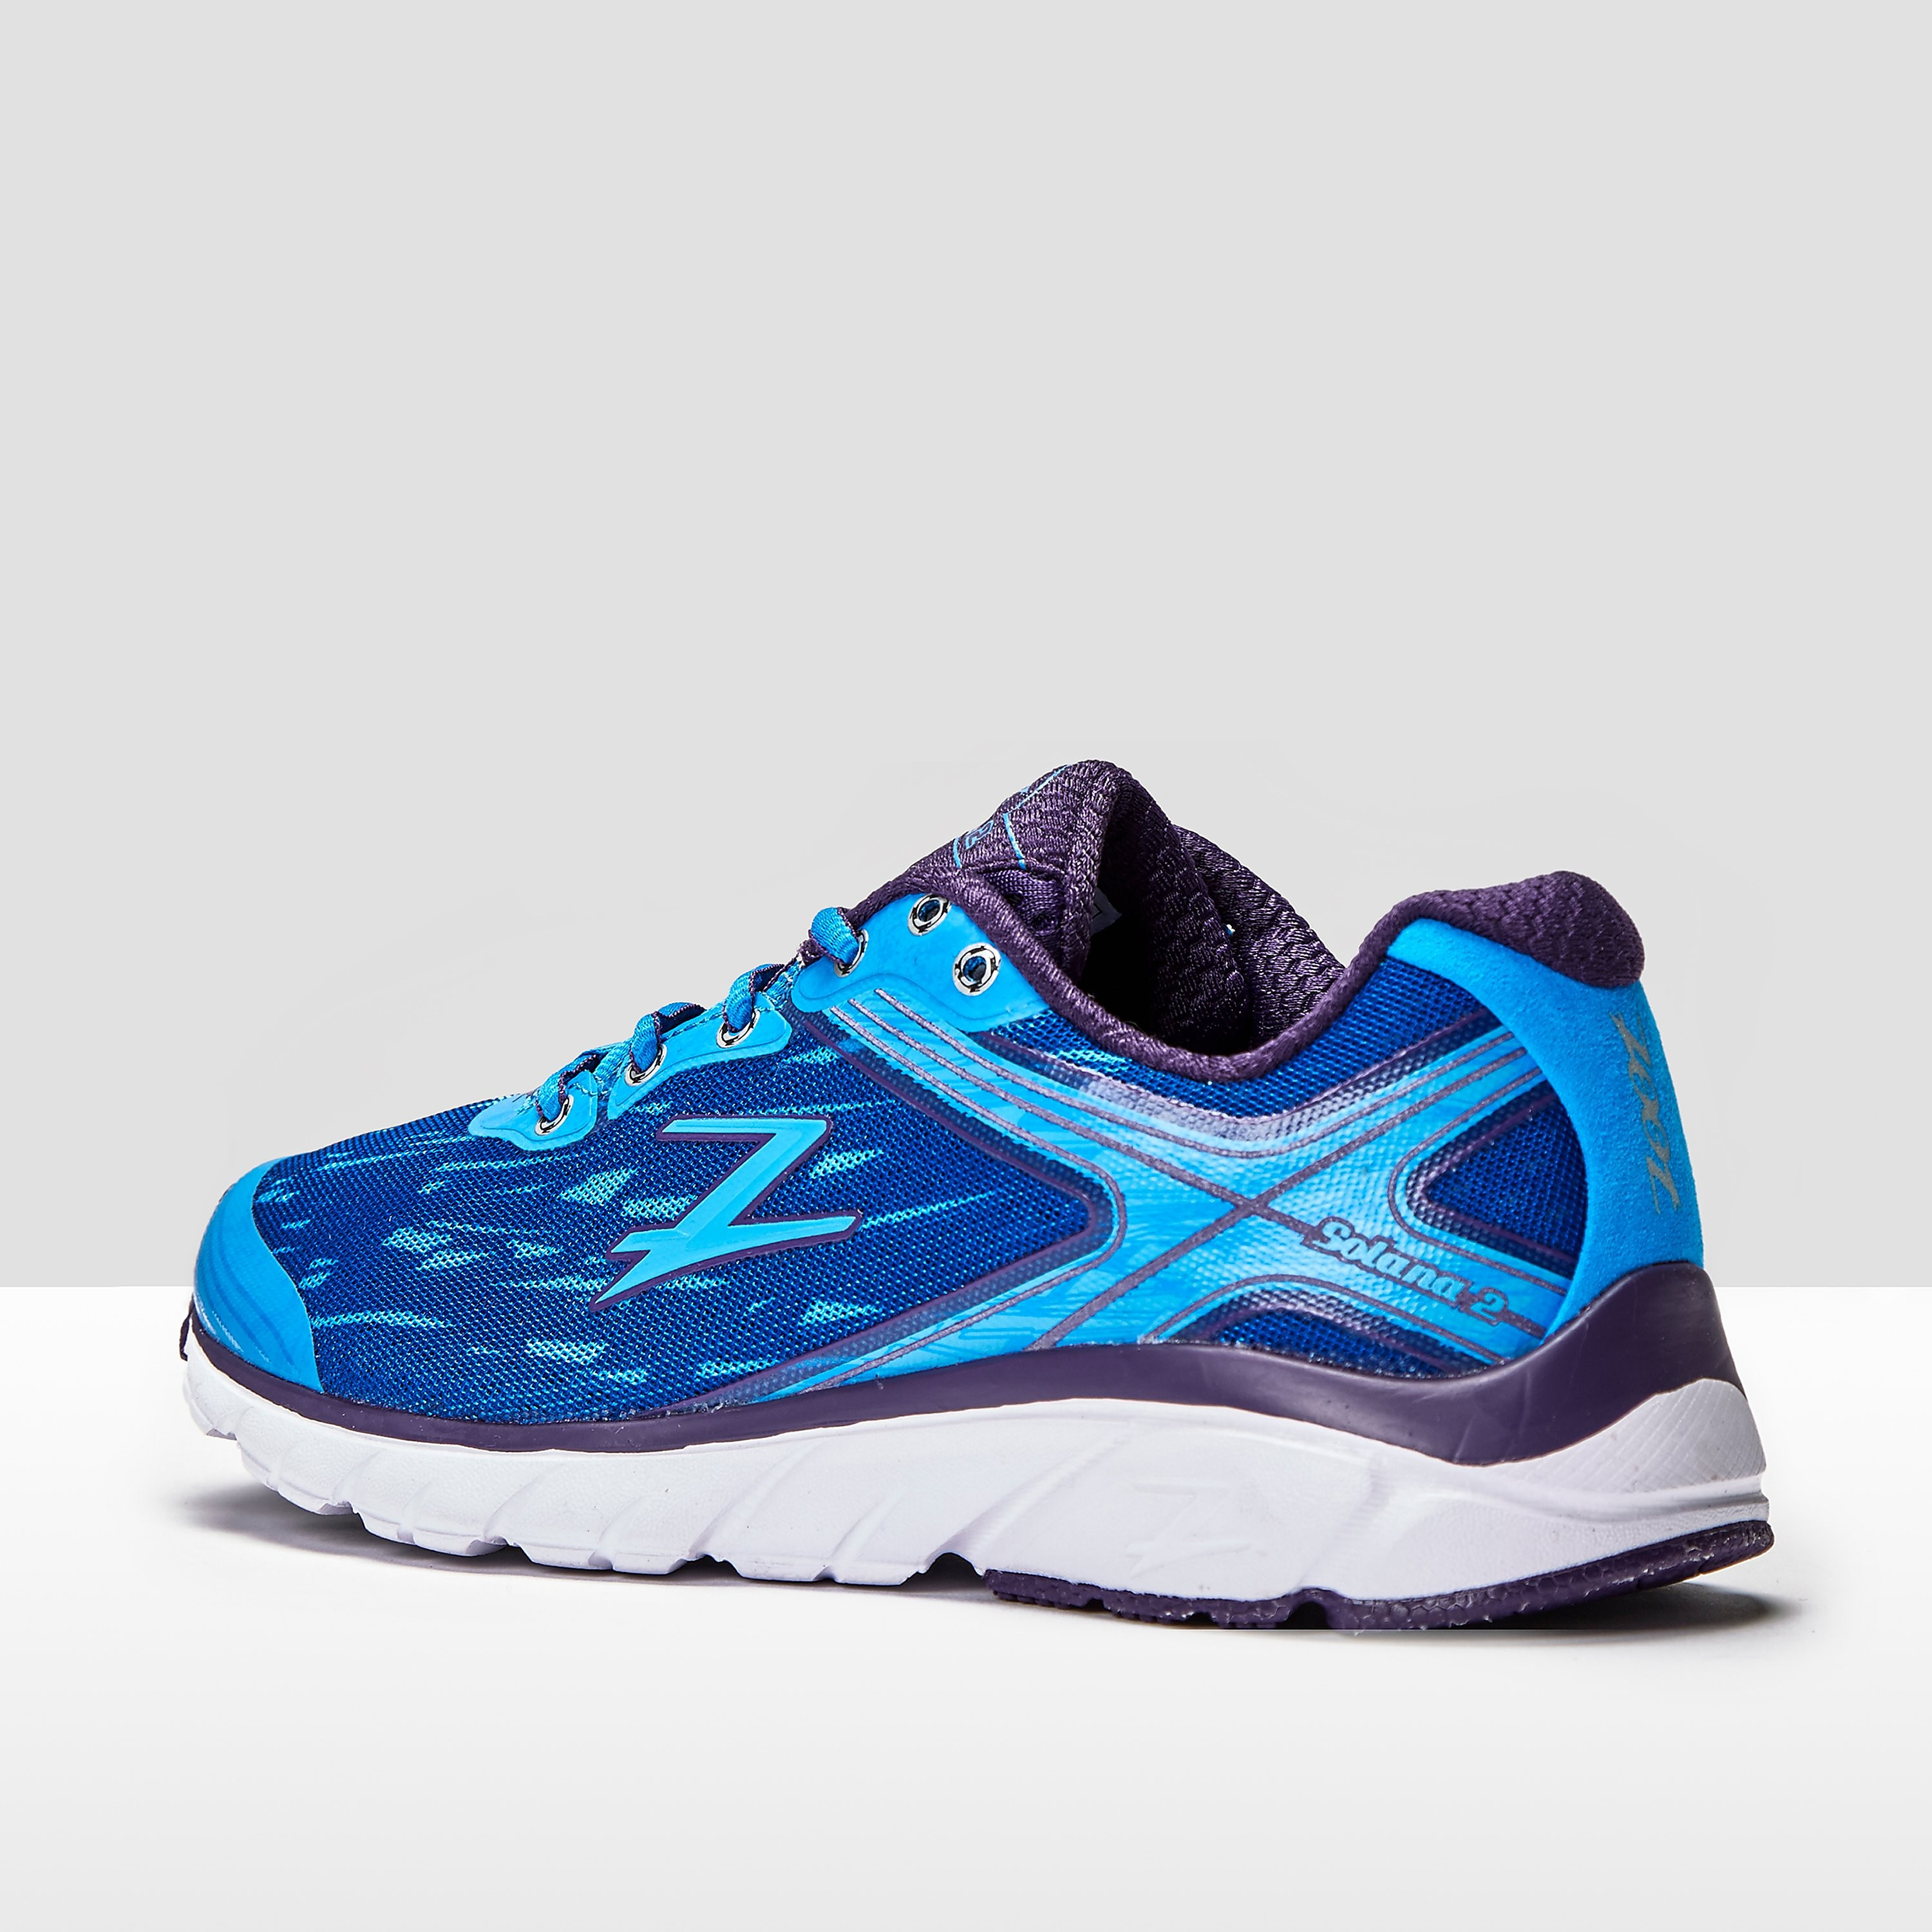 Zoot Solana Women's Running Shoe